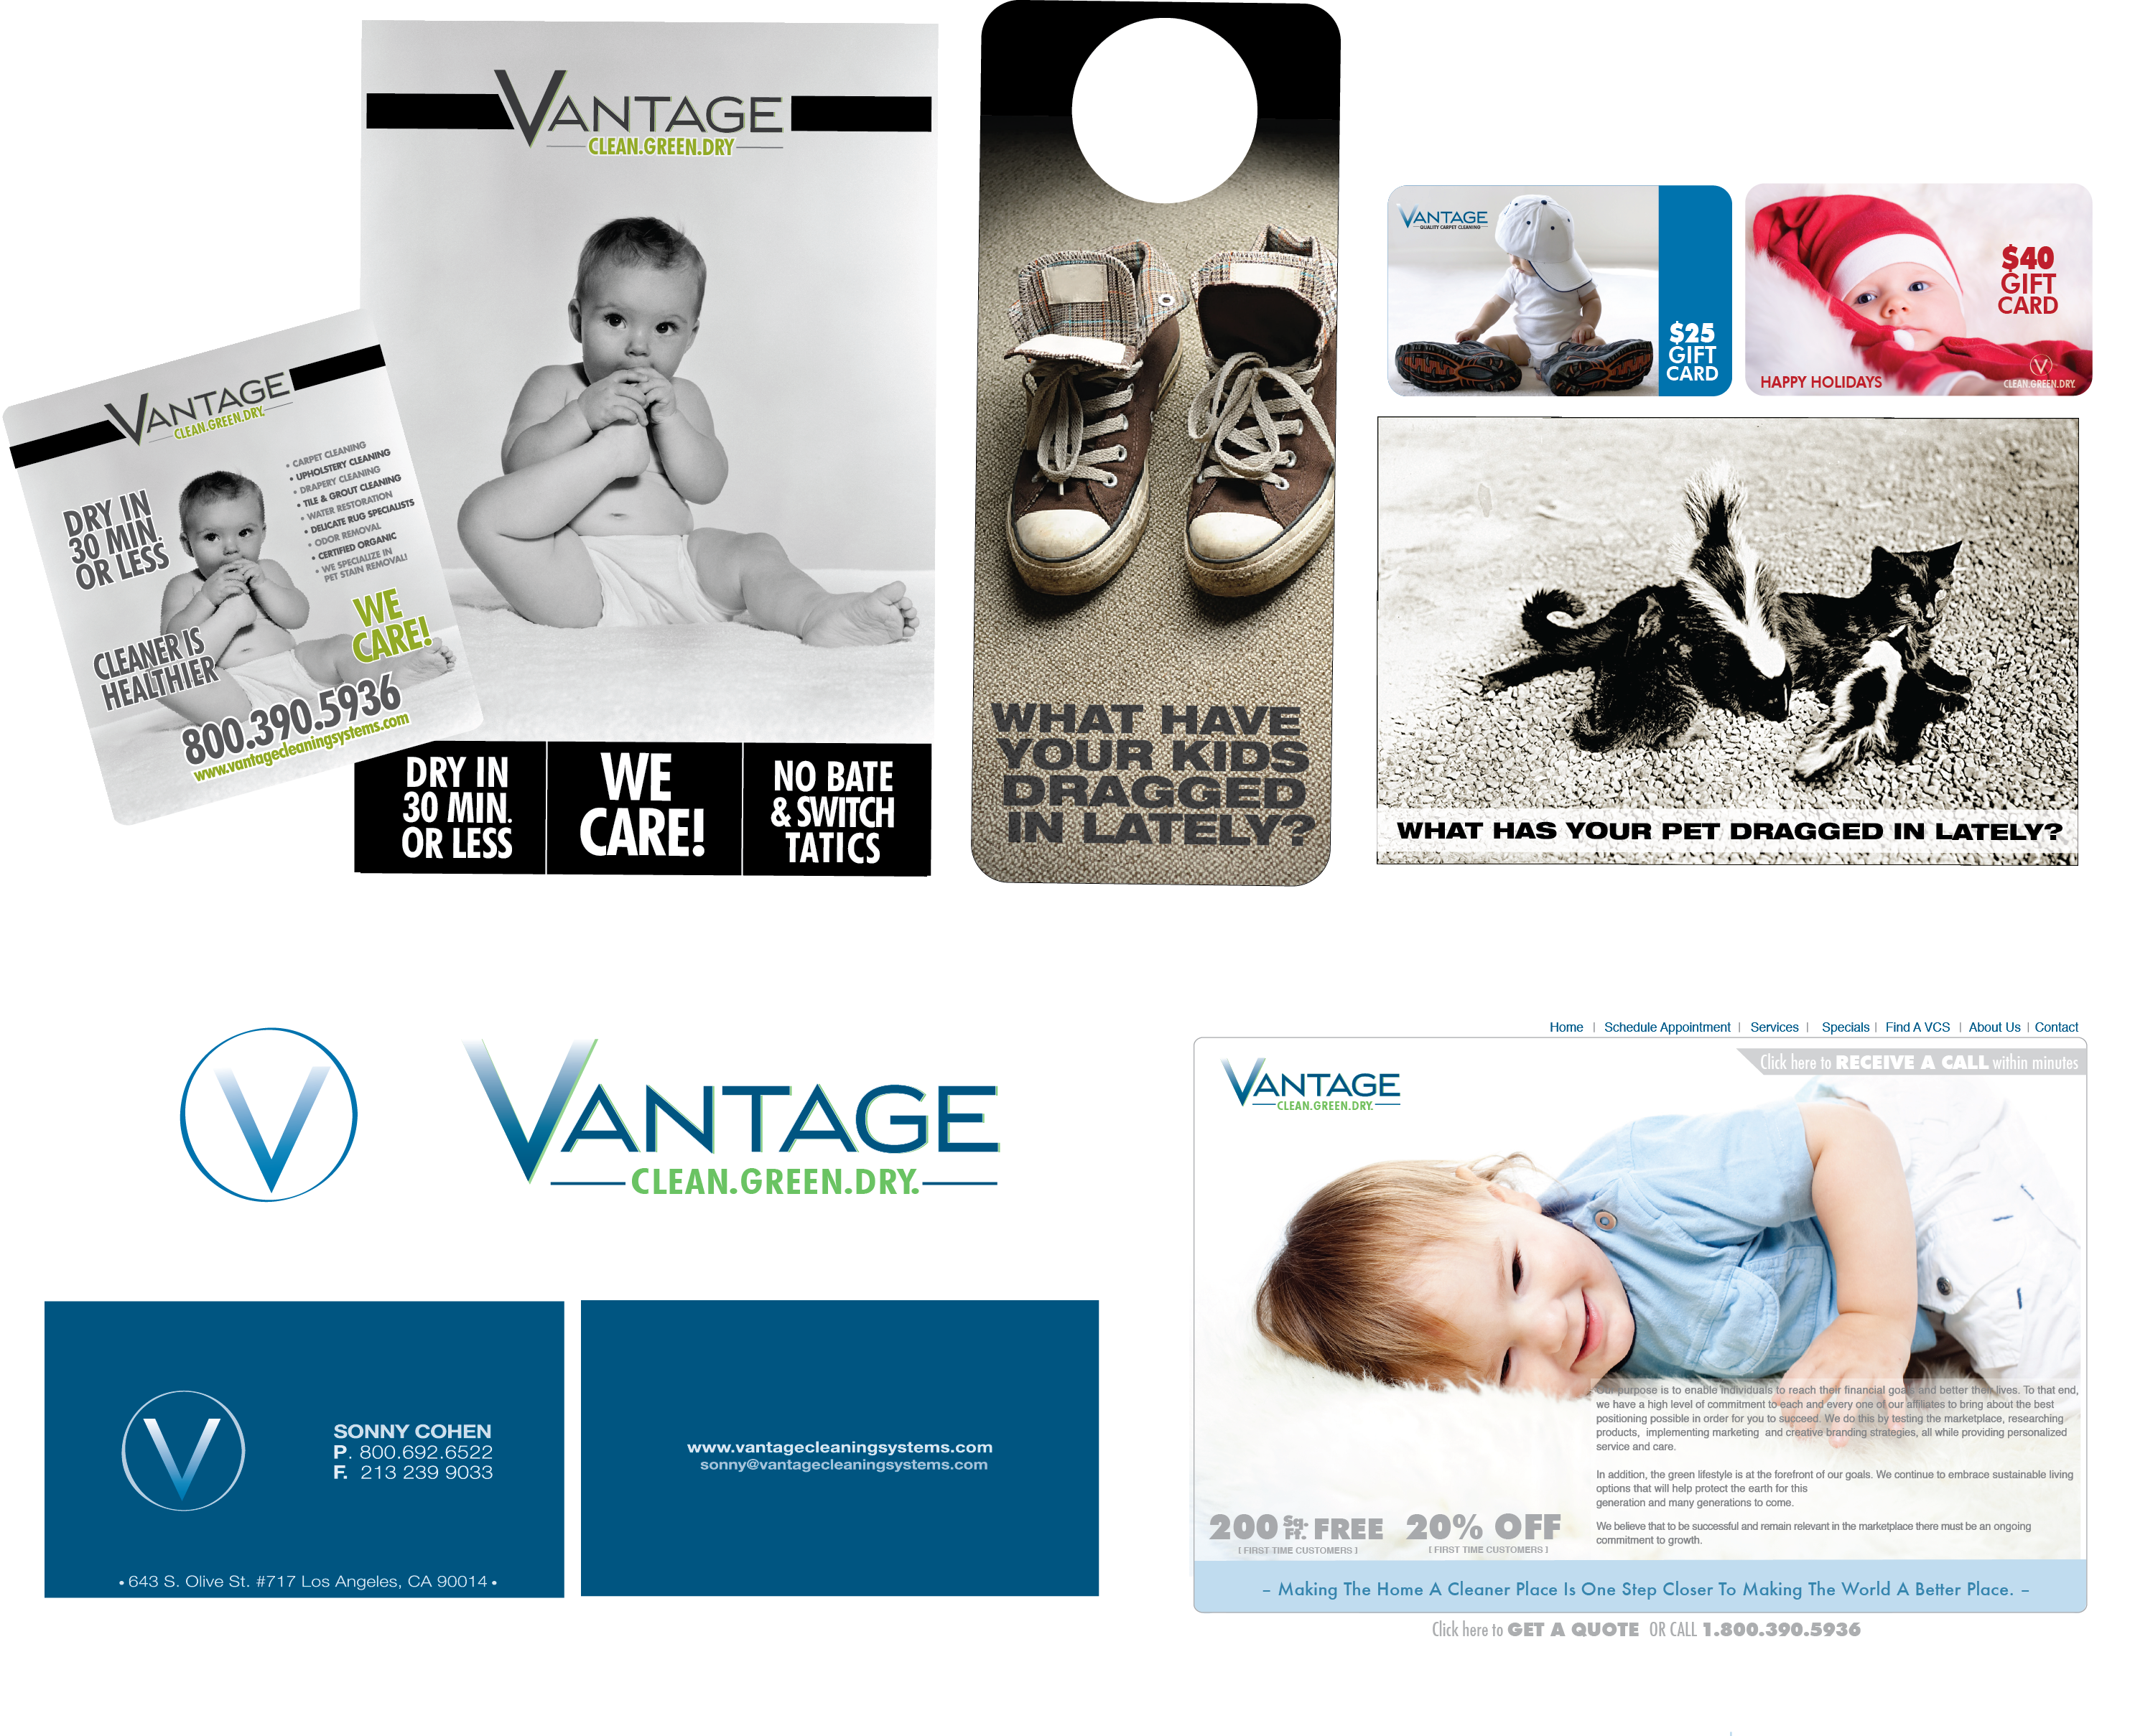 Vantage Systems